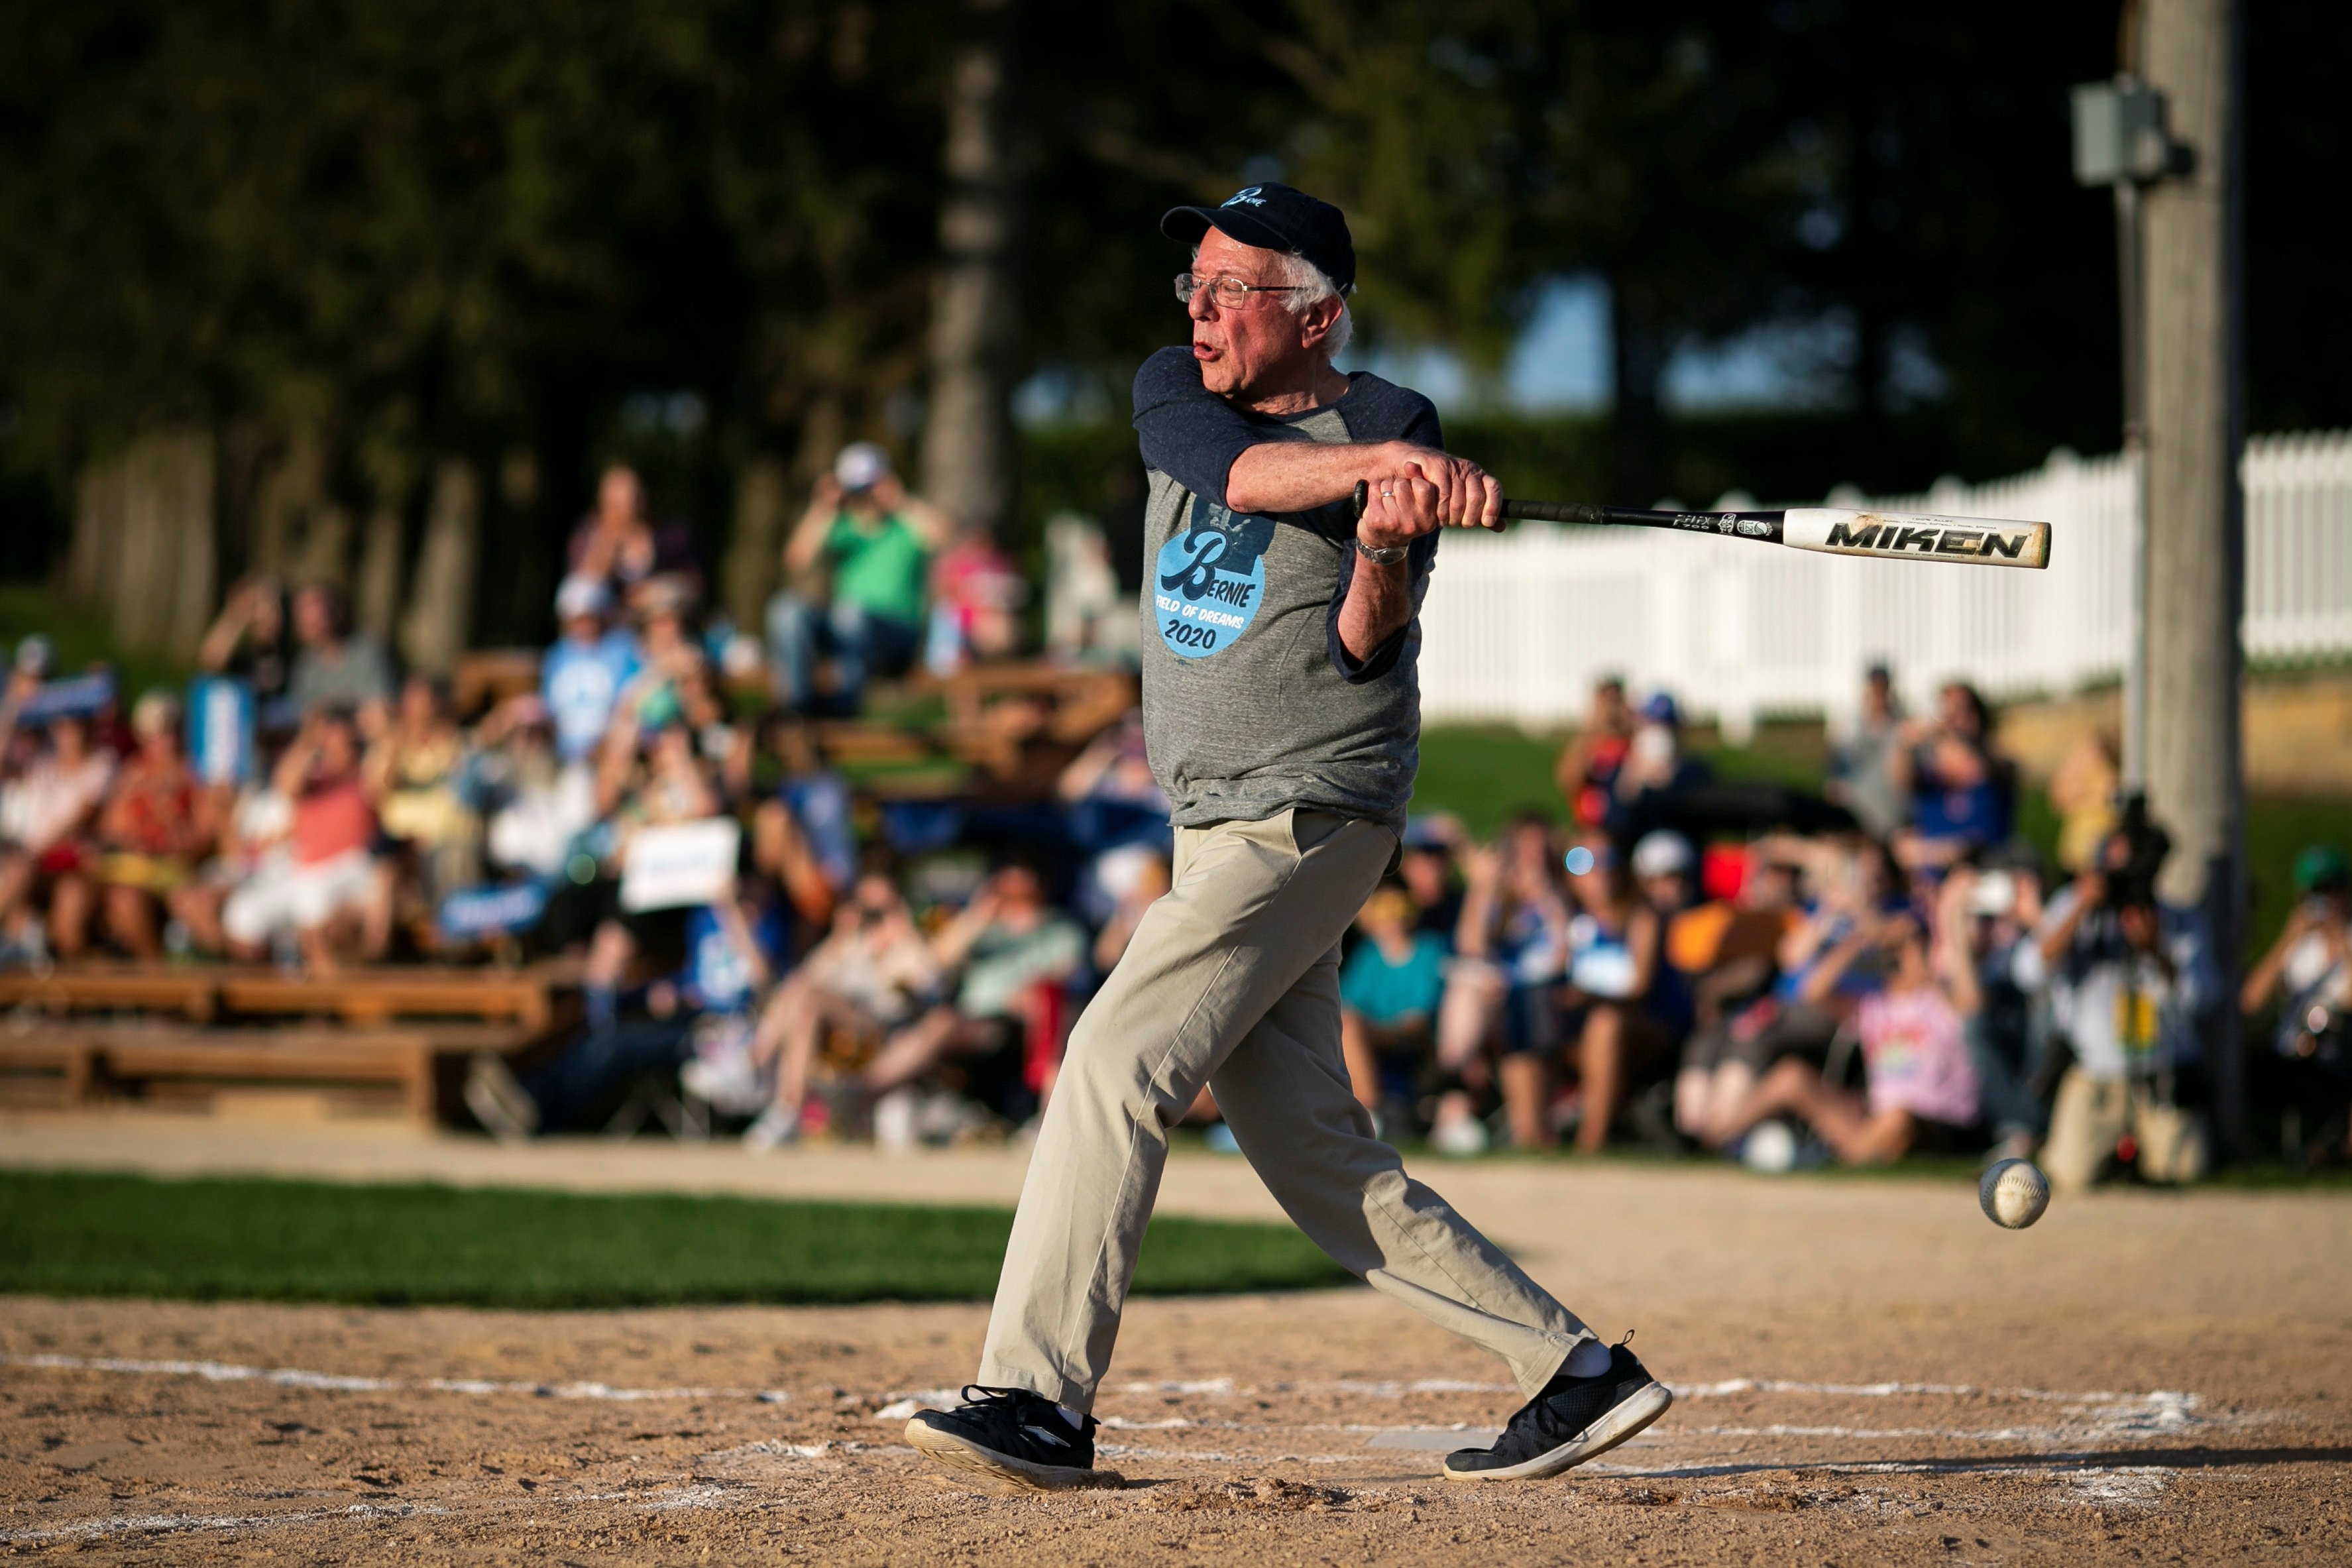 "2020 Democratic U.S. presidential candidate and U.S. Senator Bernie Sanders pitches during a baseball game between his staff, ""The Revolutionaries,"" and the Leaders Believers Achievers Foundation. U.S., August 19, 2019. REUTERS/Al Drago"